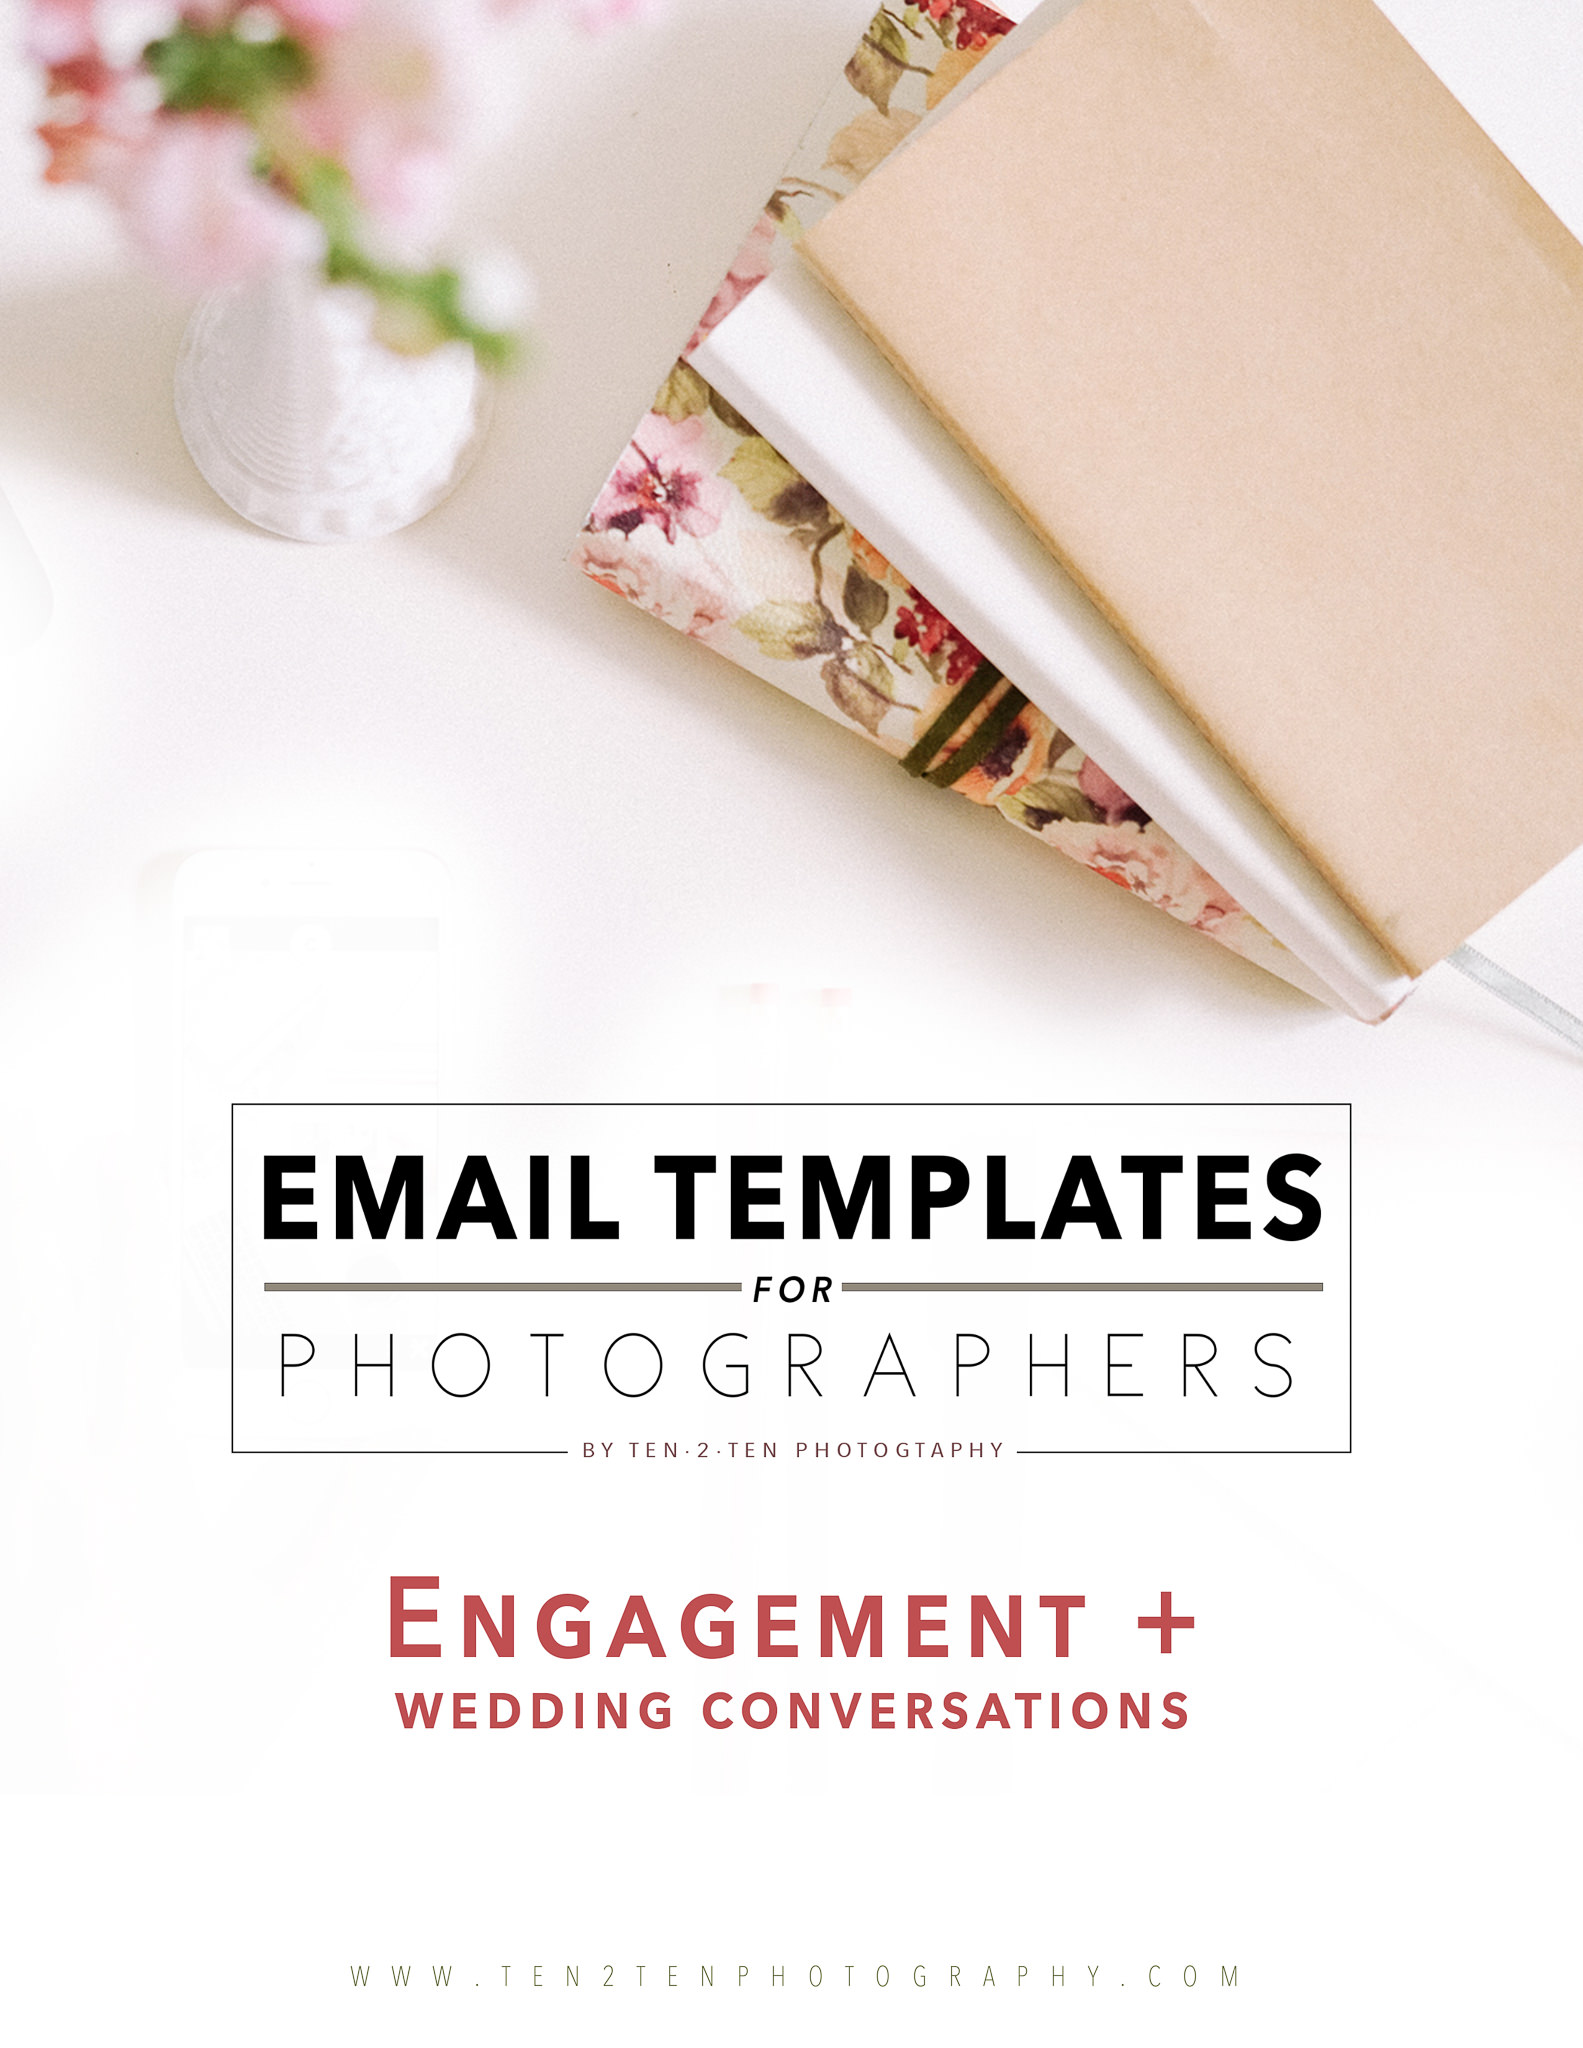 email templates for photographers 6 - Email Templates for Photographers - Engagement + Wedding Conversations